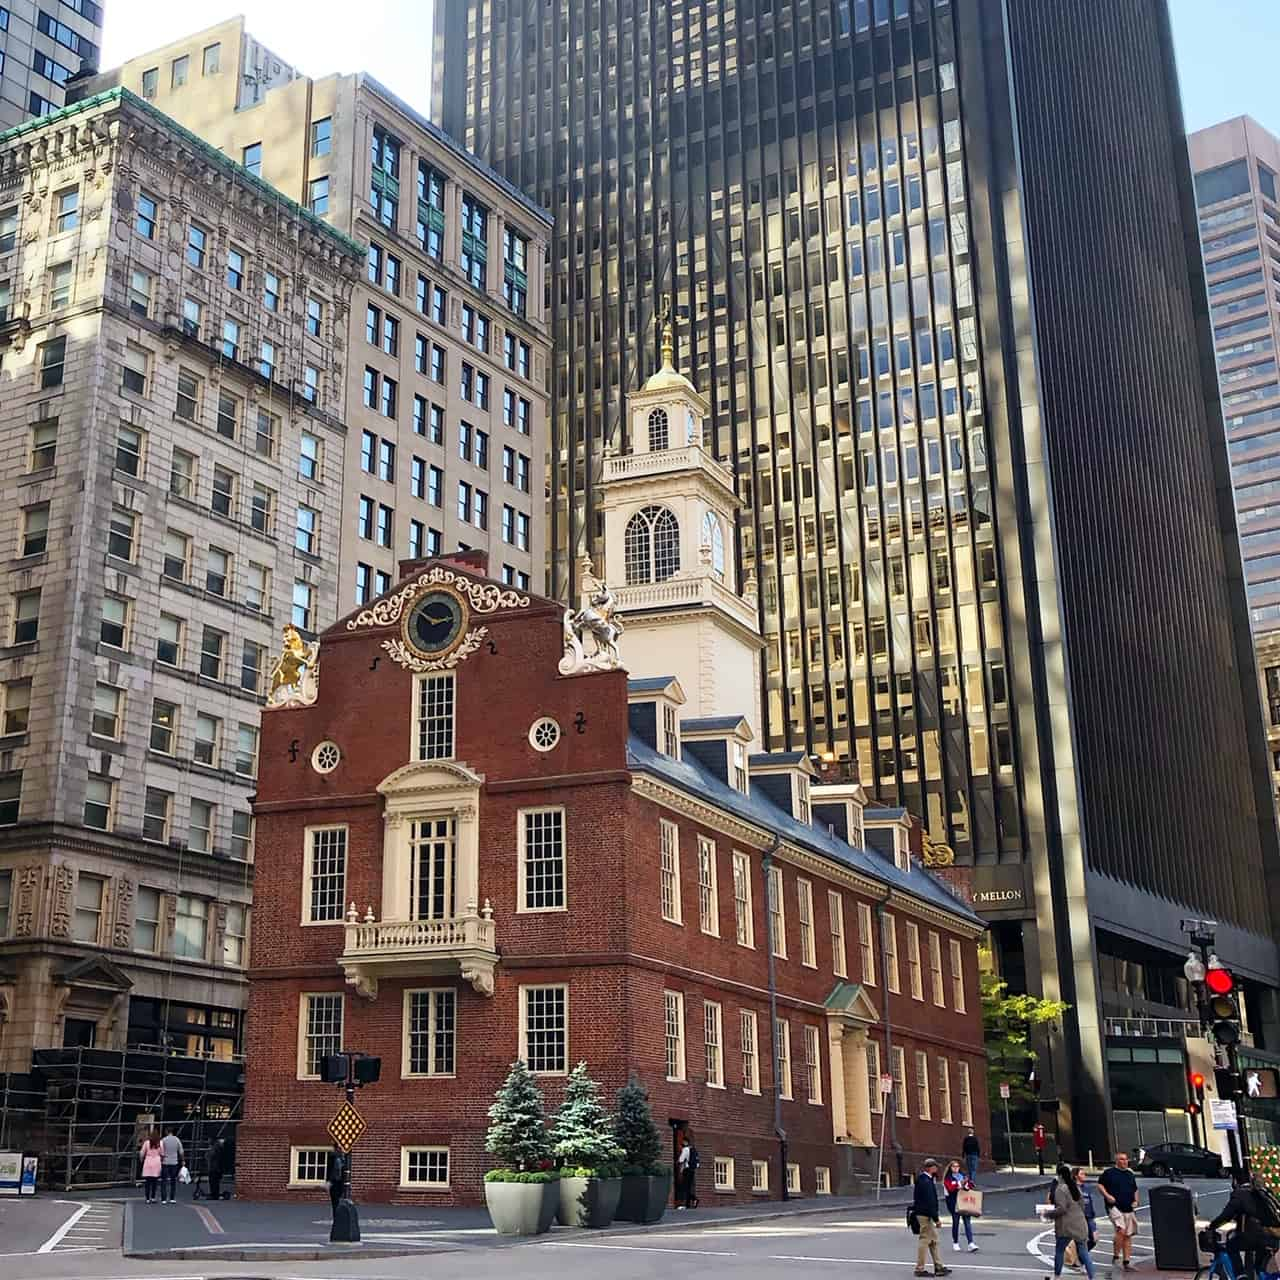 Many sites are closed on new england road trip covid. The Old State House in Boston